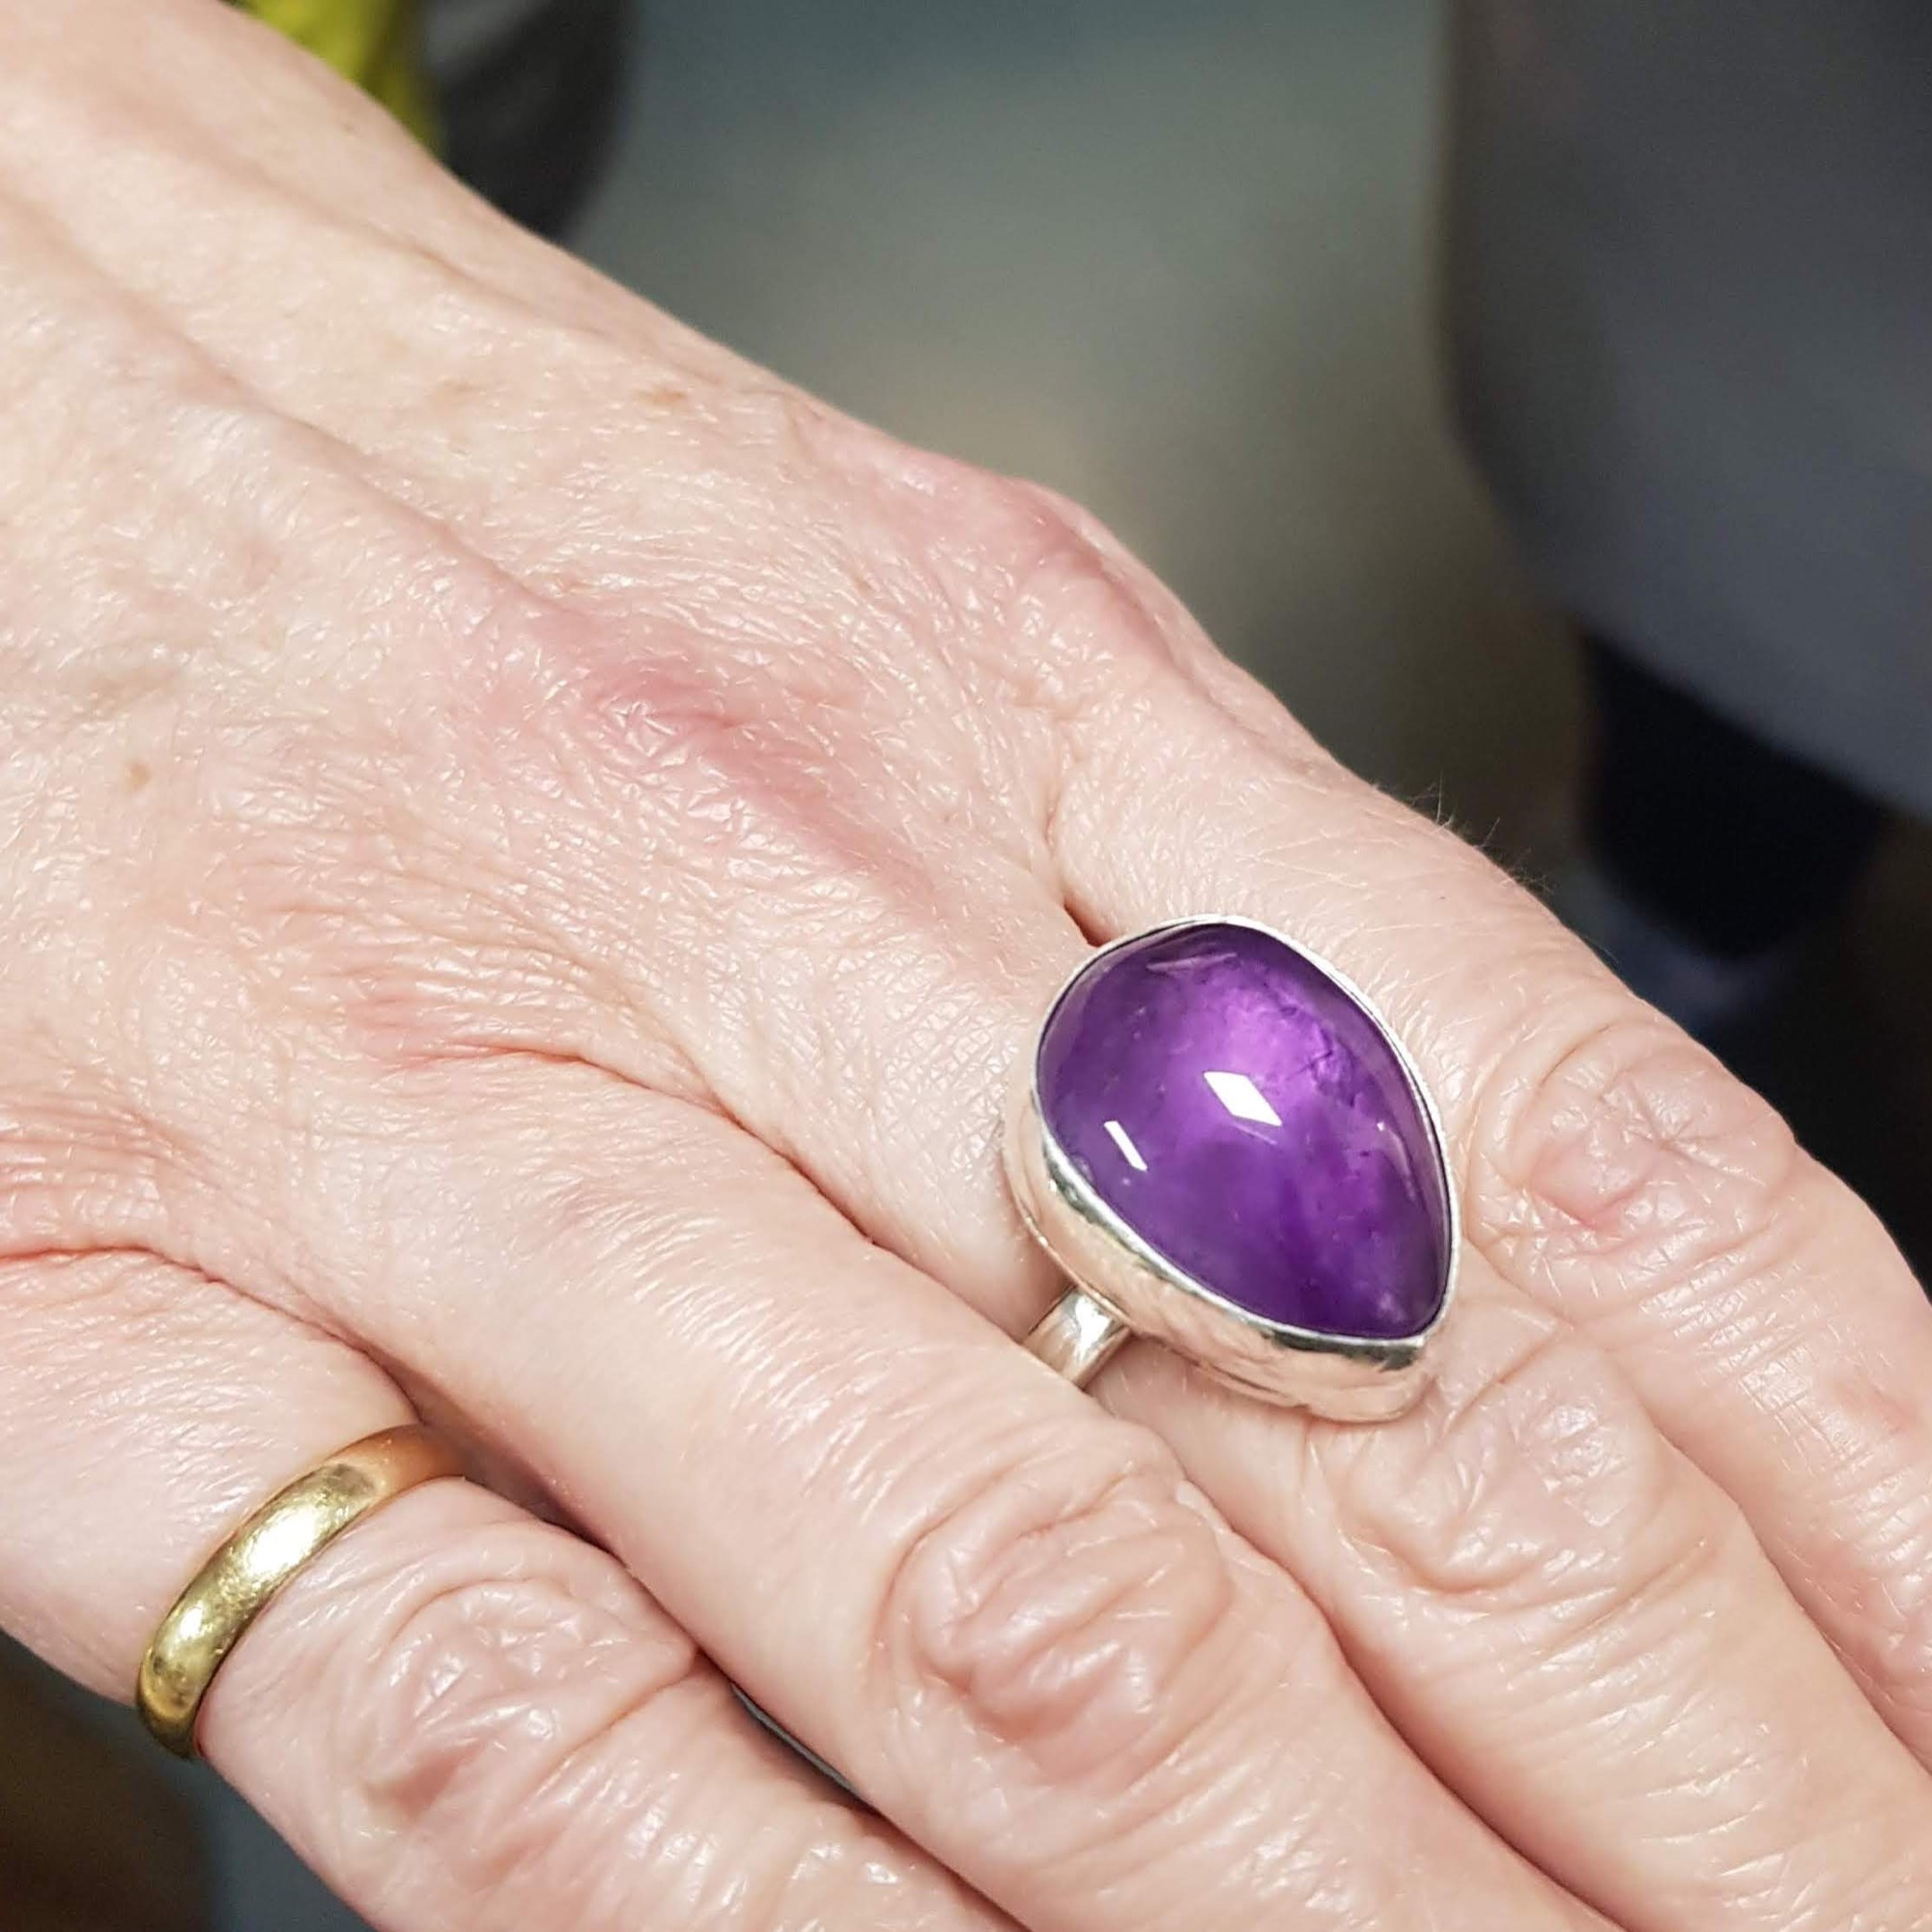 Stone setting ring workshop, beautiful amethyst ring